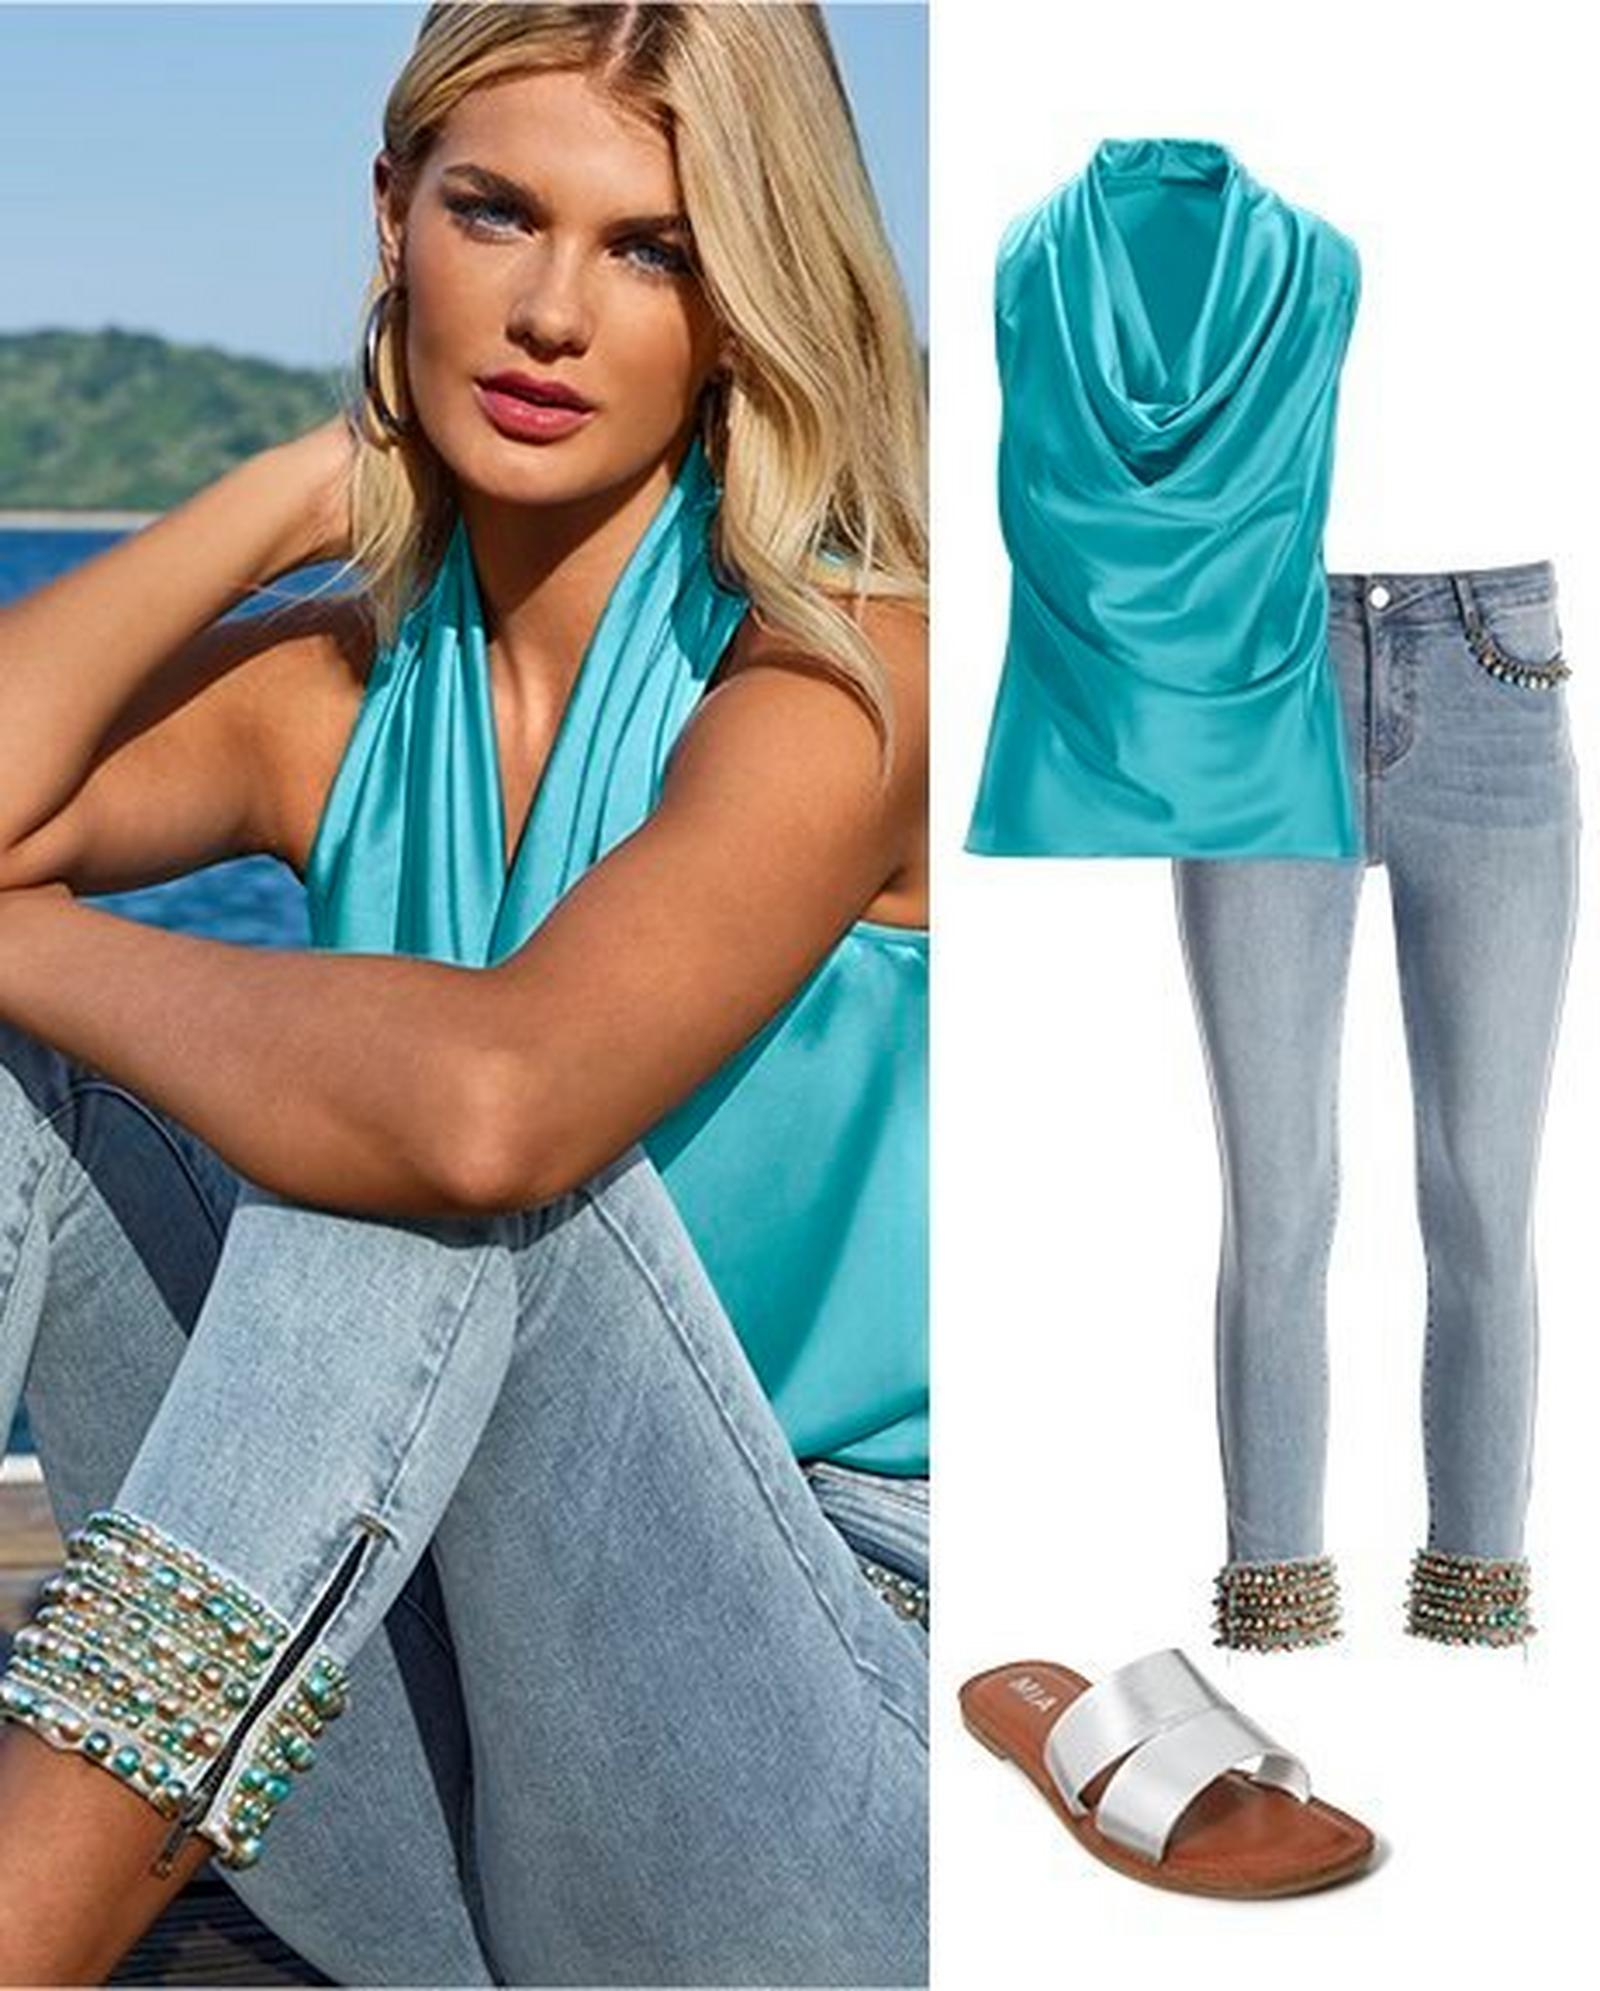 left model wearing a light blue sleeveless cowl neck top and pearl embellished ankle jeans. right panel: light blue sleeveless cowl neck top, pearl embellished ankle jeans, and silver double strap sandals.